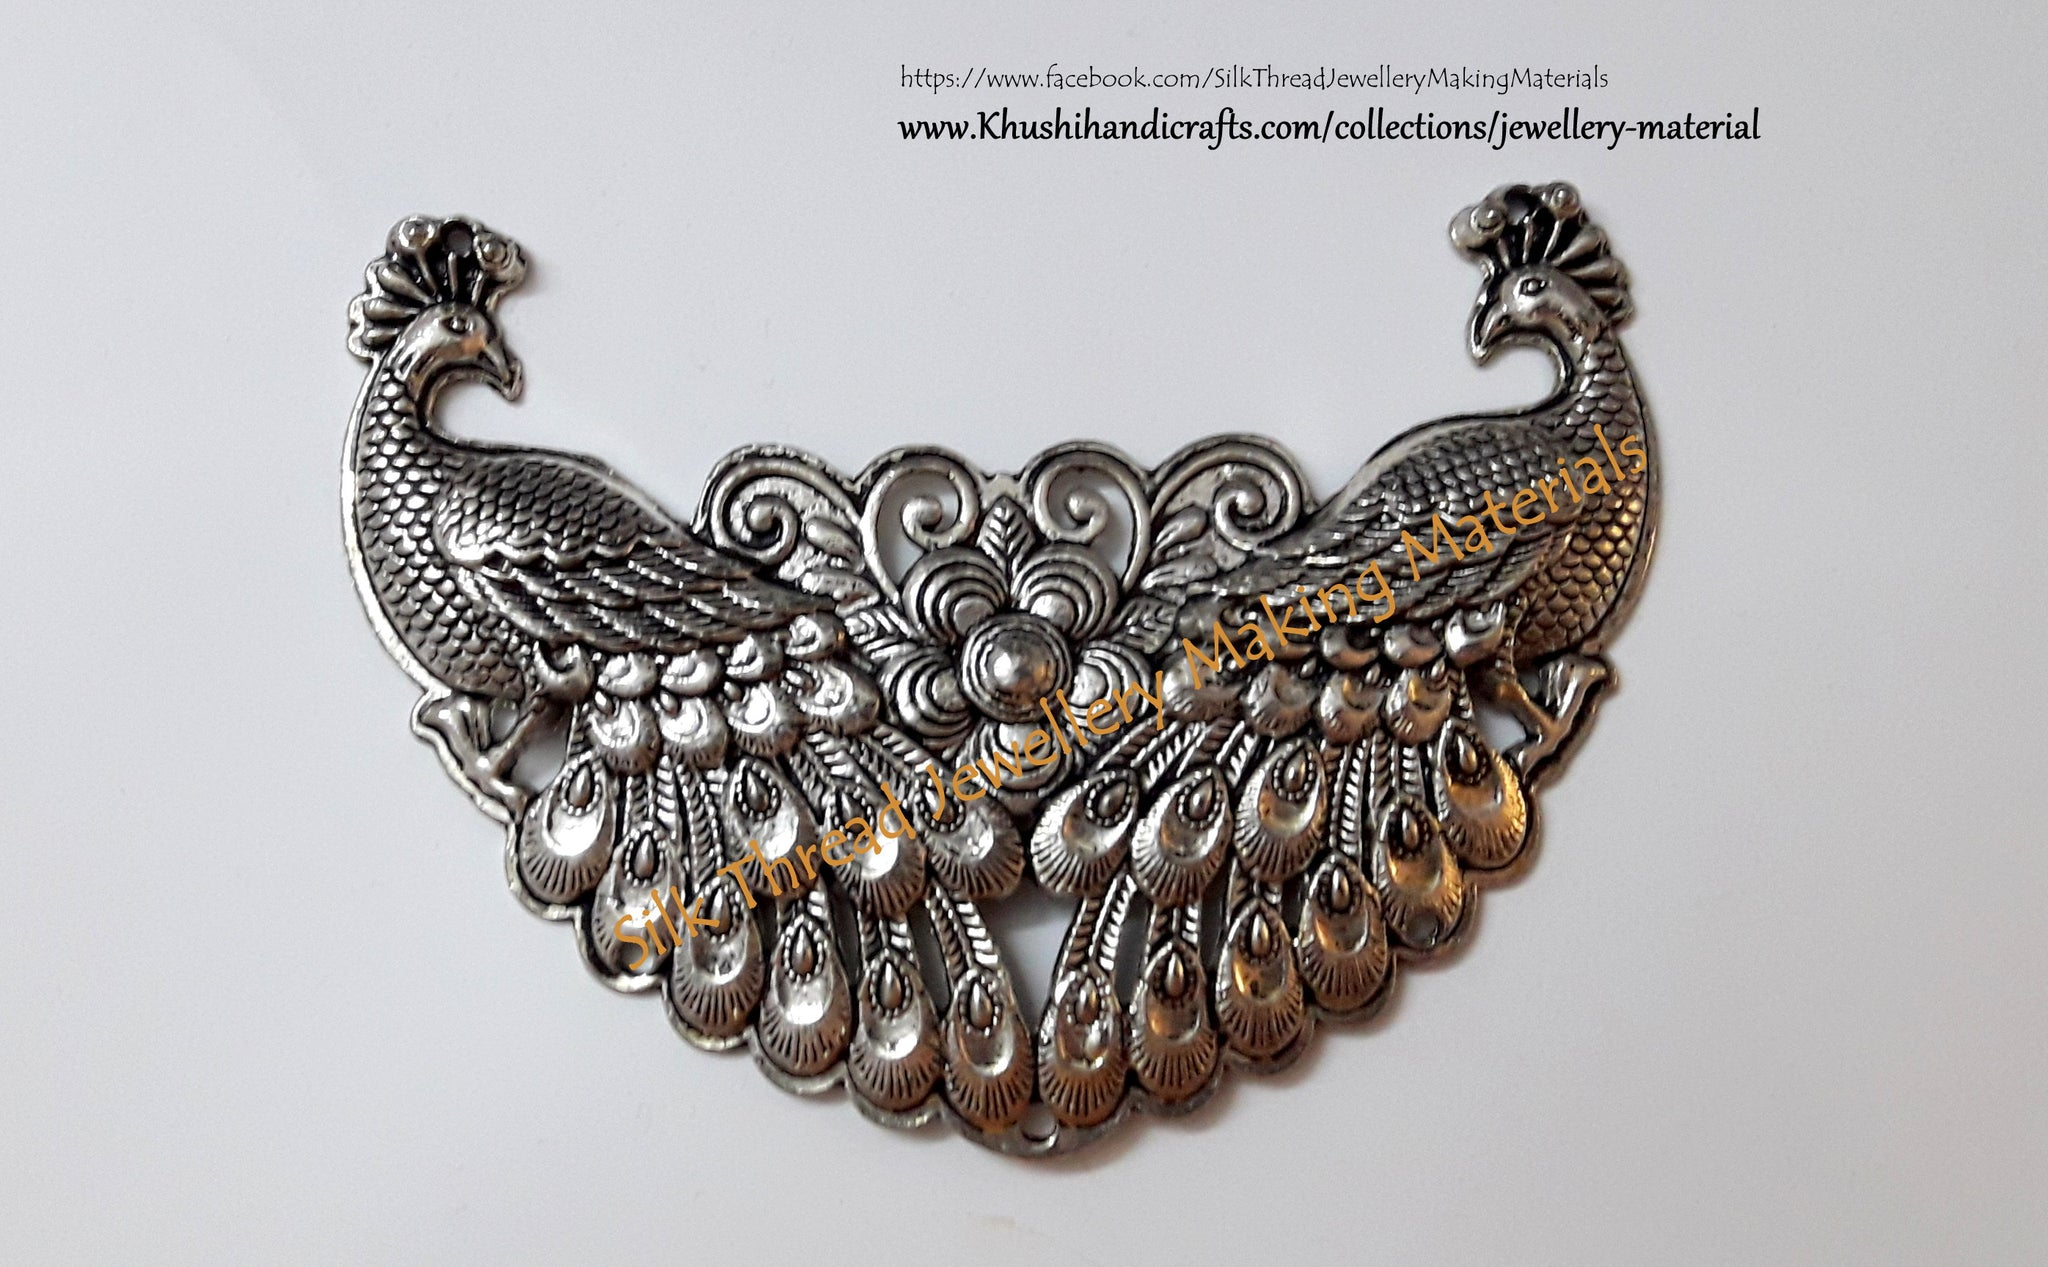 Antique Silver Peacock Pendant .Jewelry materials online